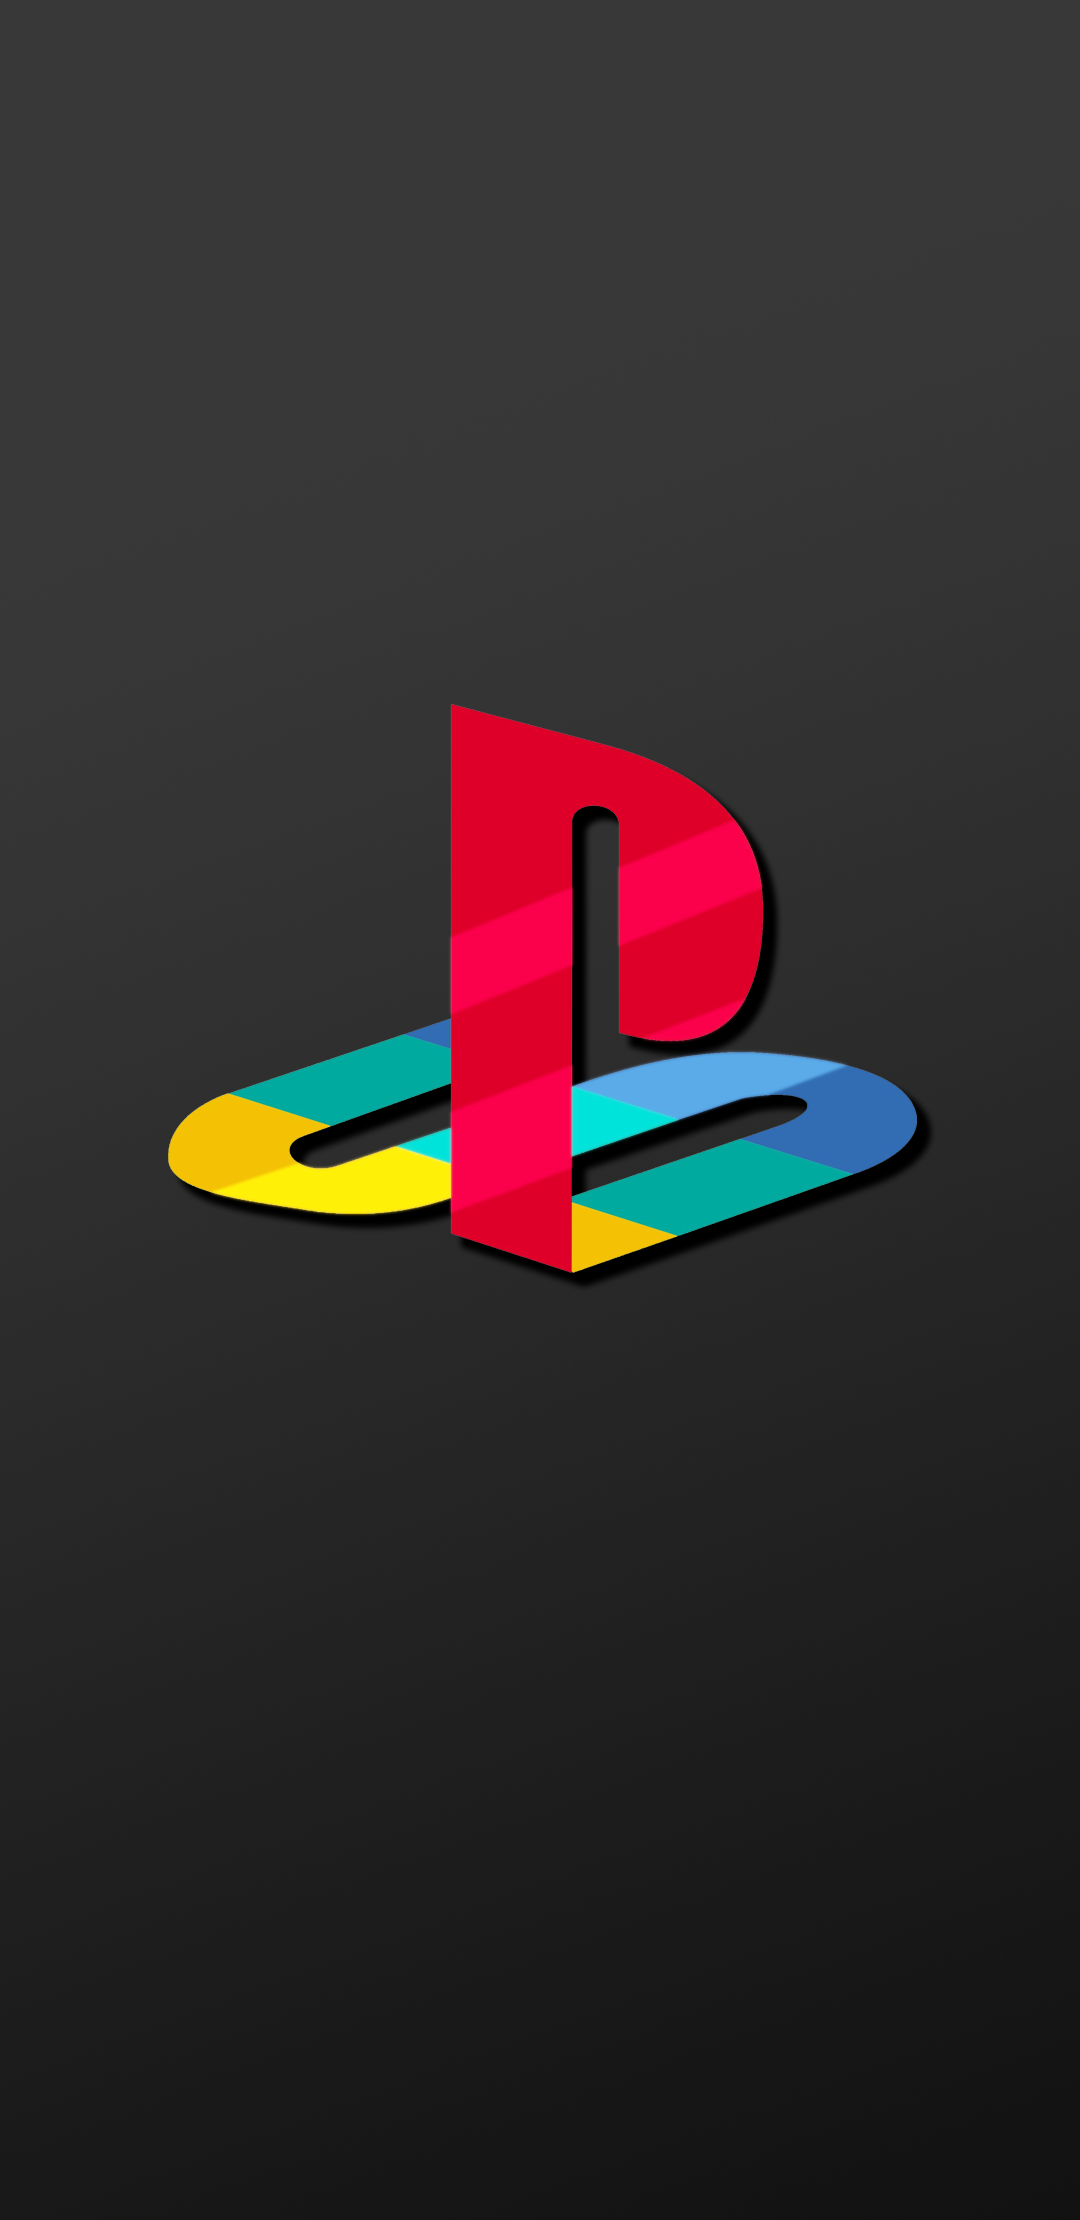 PlayStation Original Logo (just made it) imagens